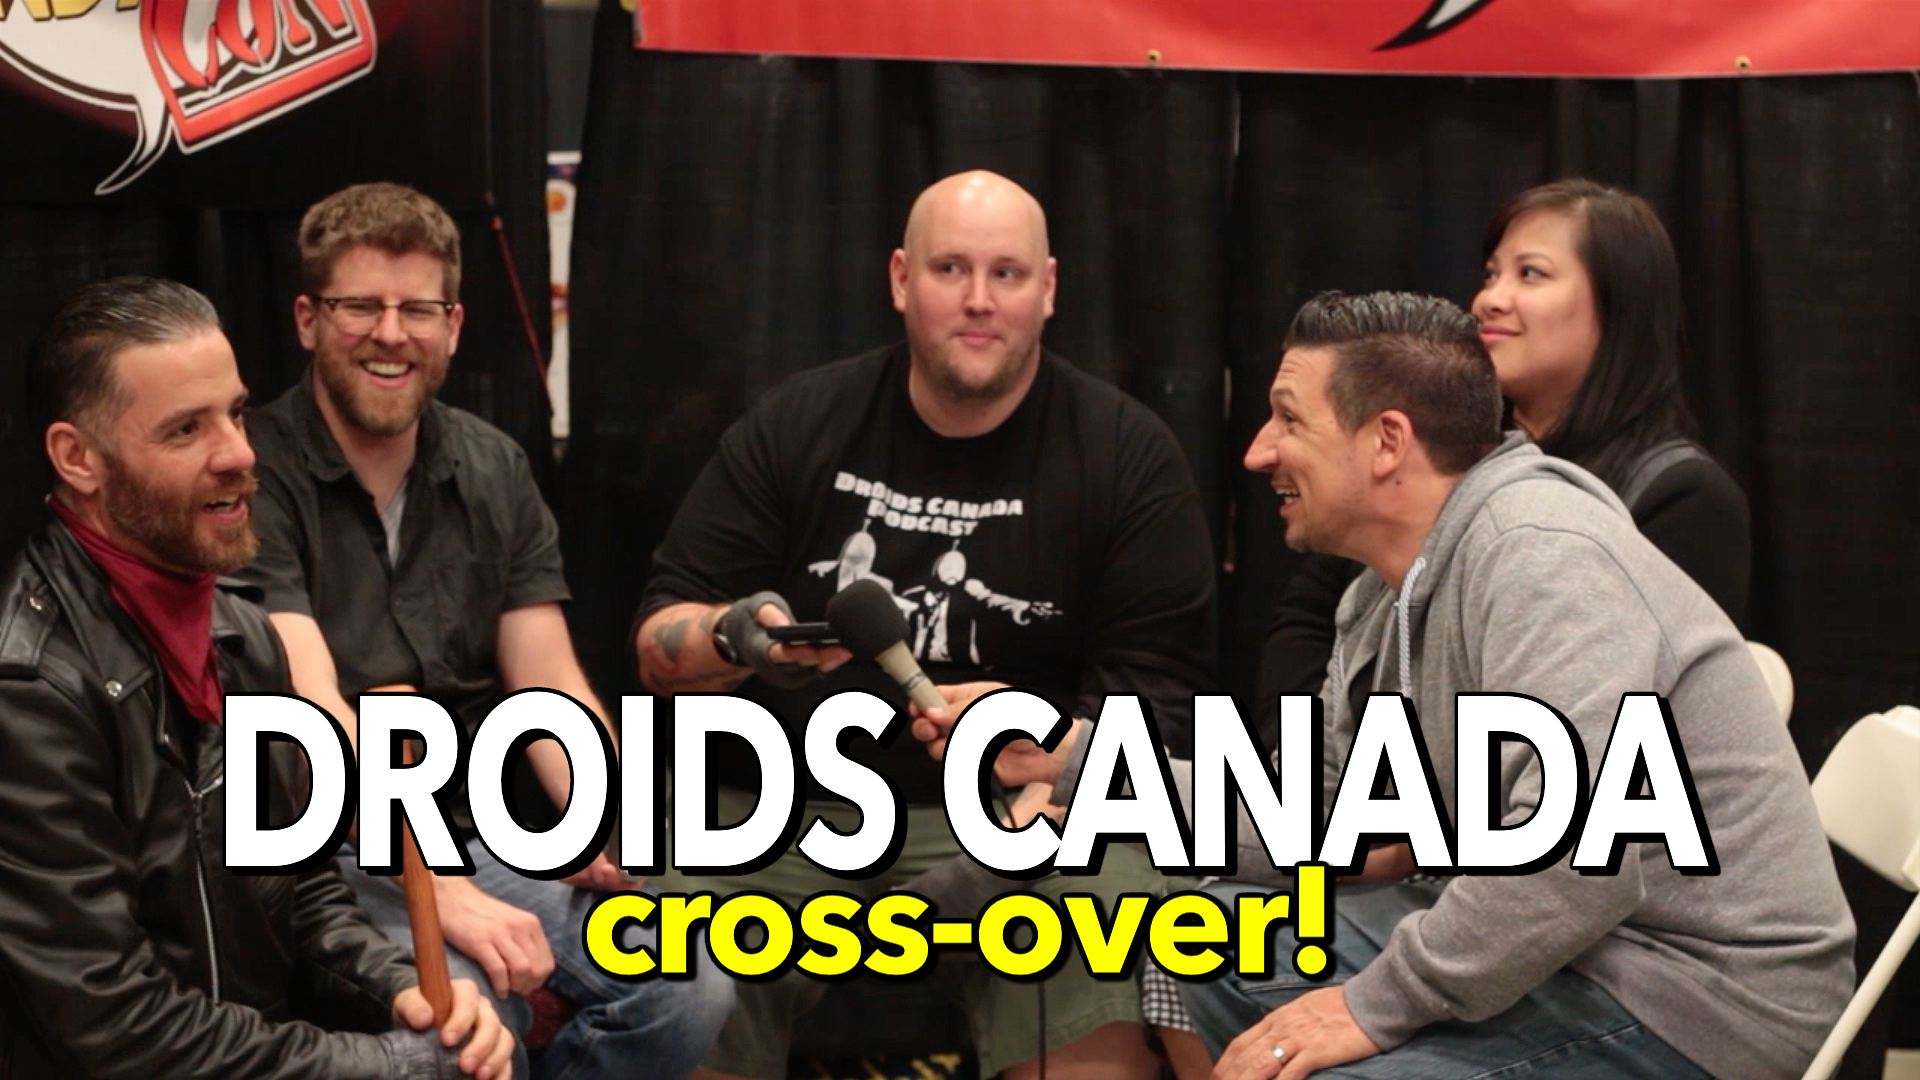 It's a comic con crossover w Droids Canada!